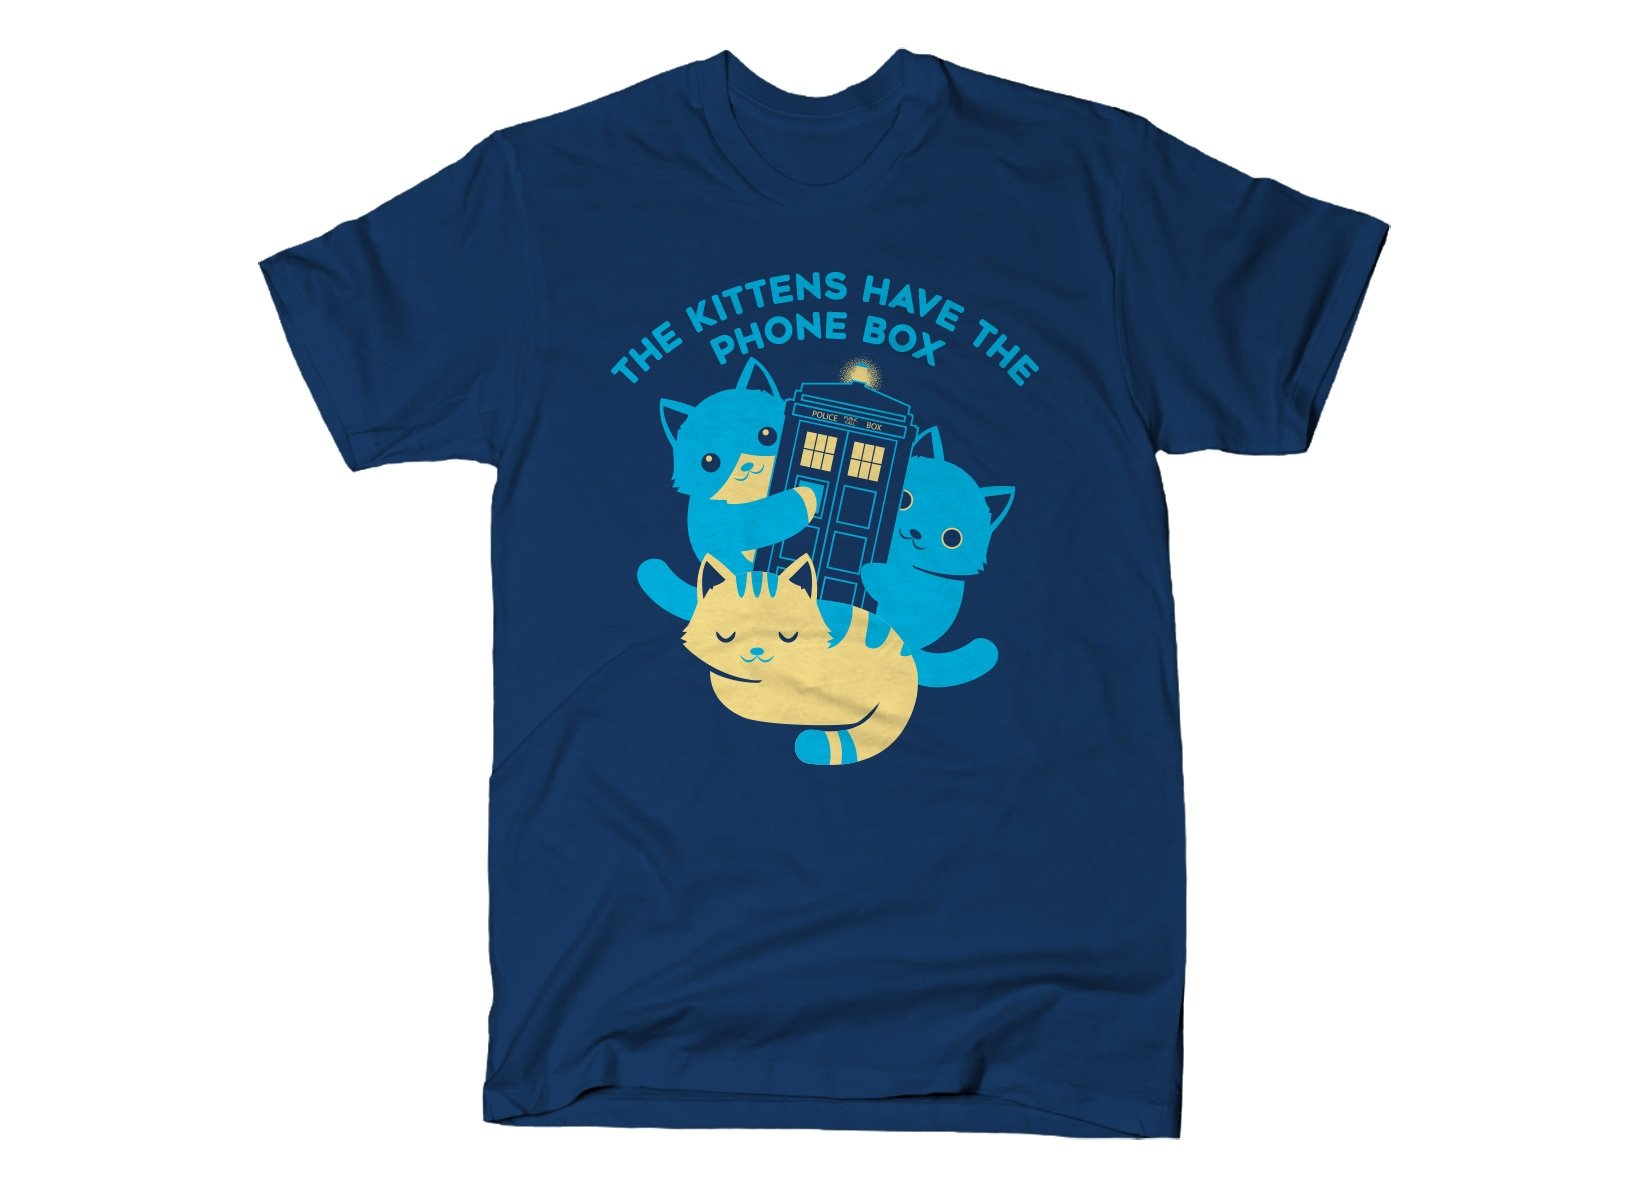 The Kittens Have The Phone Box on Mens T-Shirt